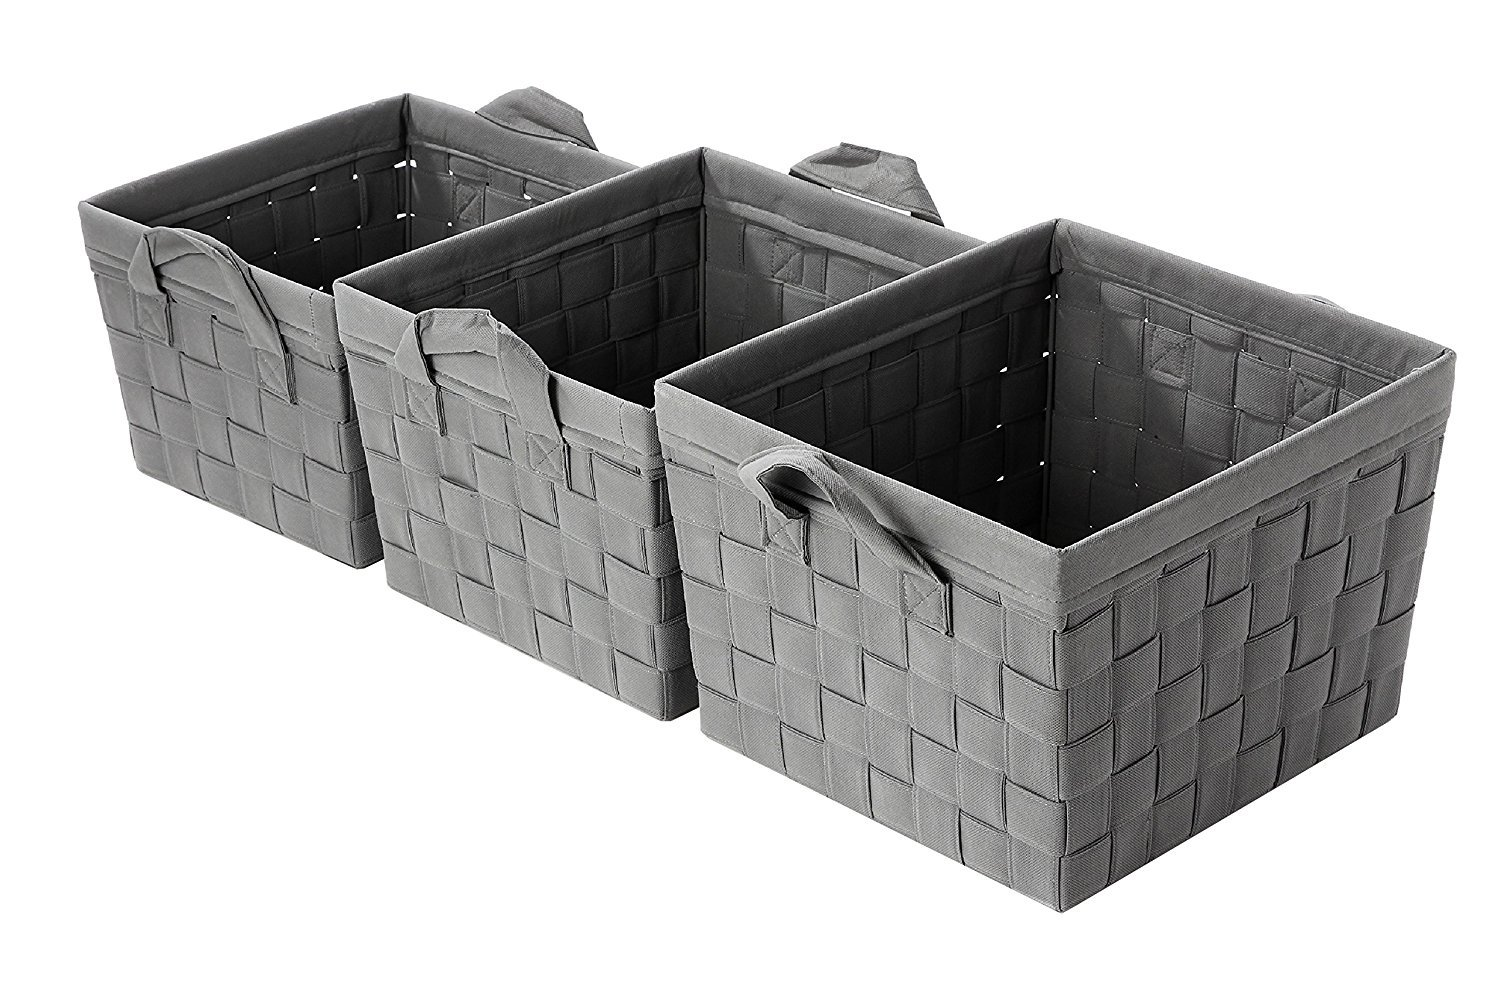 Juvale Storage Basket - 3-Piece Nesting Baskets, Grey Woven Storage Cube Containers - Storage Bins – Decorative Organizing Baskets Shelves, Magazines, Books, Toys – Small, Medium, Large Toys – Small